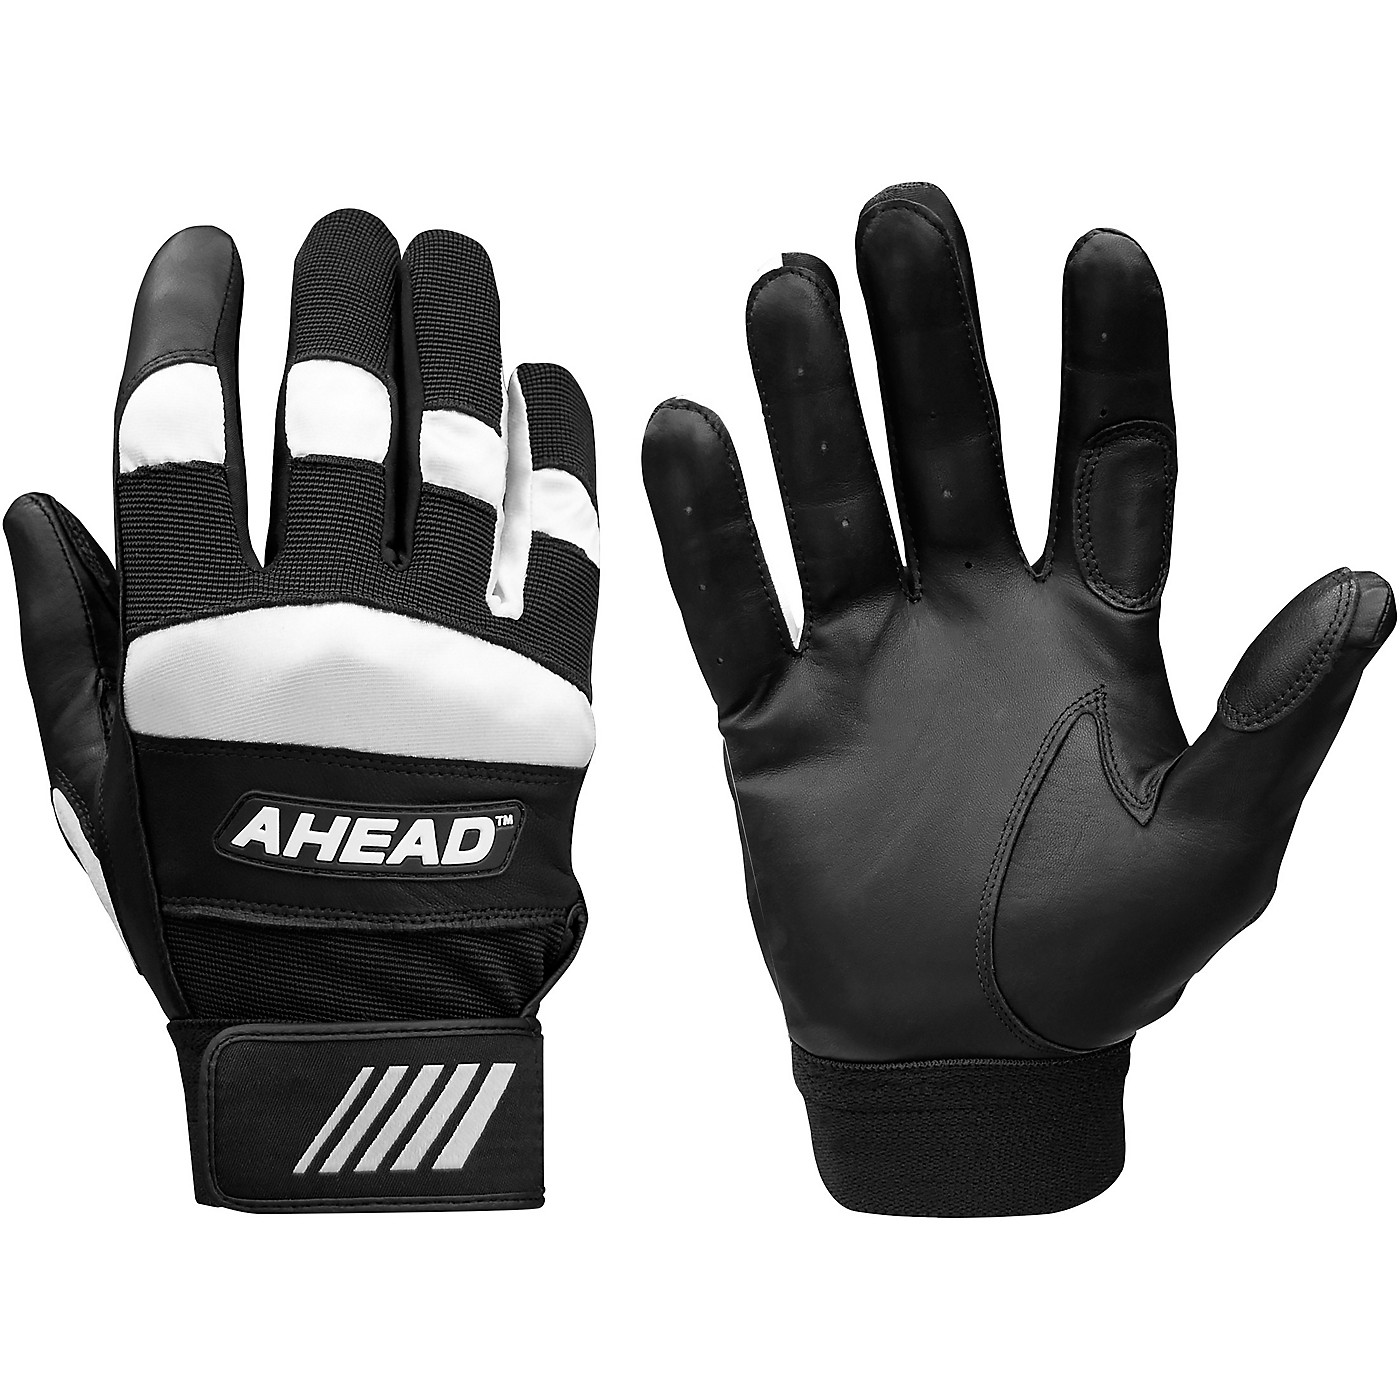 Ahead Drummer's Gloves with Wrist Support thumbnail